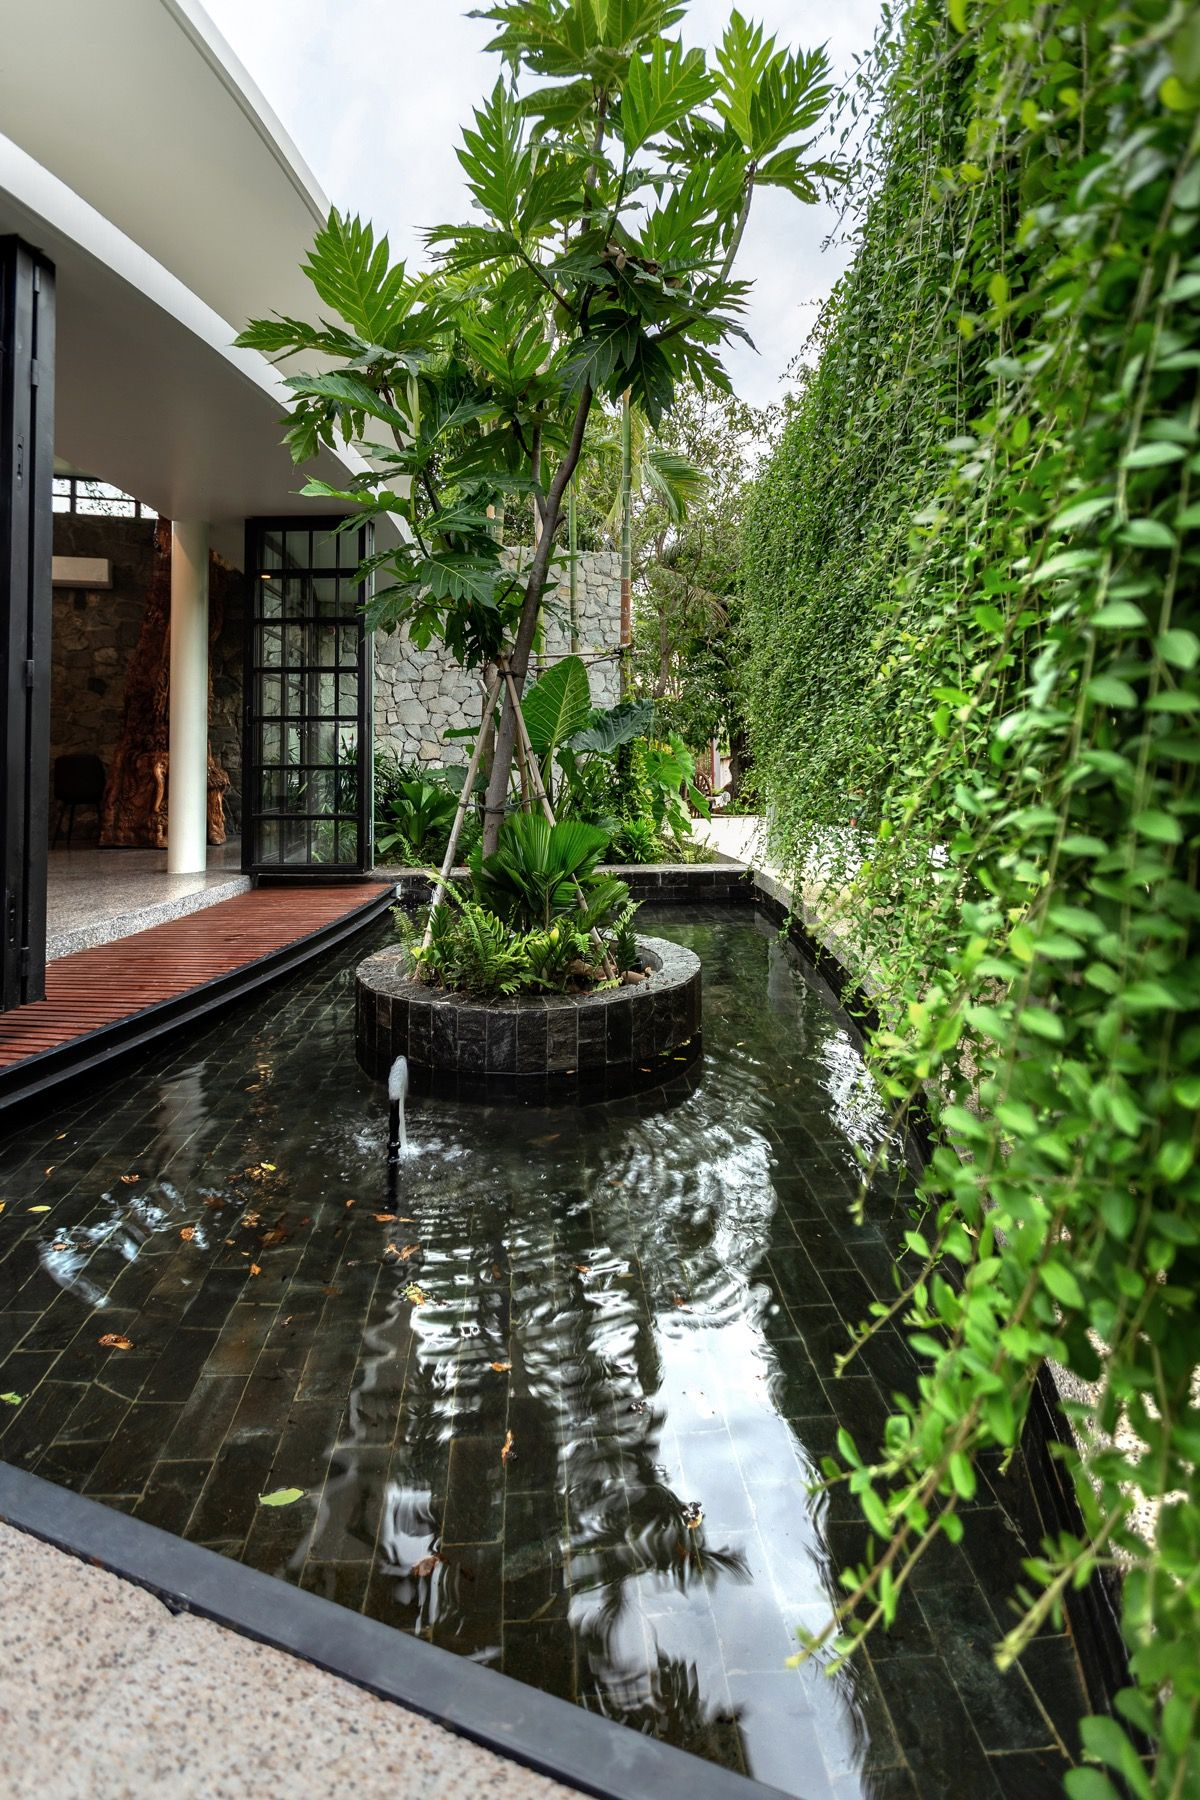 Lush Tropical House Surrounded By Nature Tropical Houses House Near Water Roof Garden